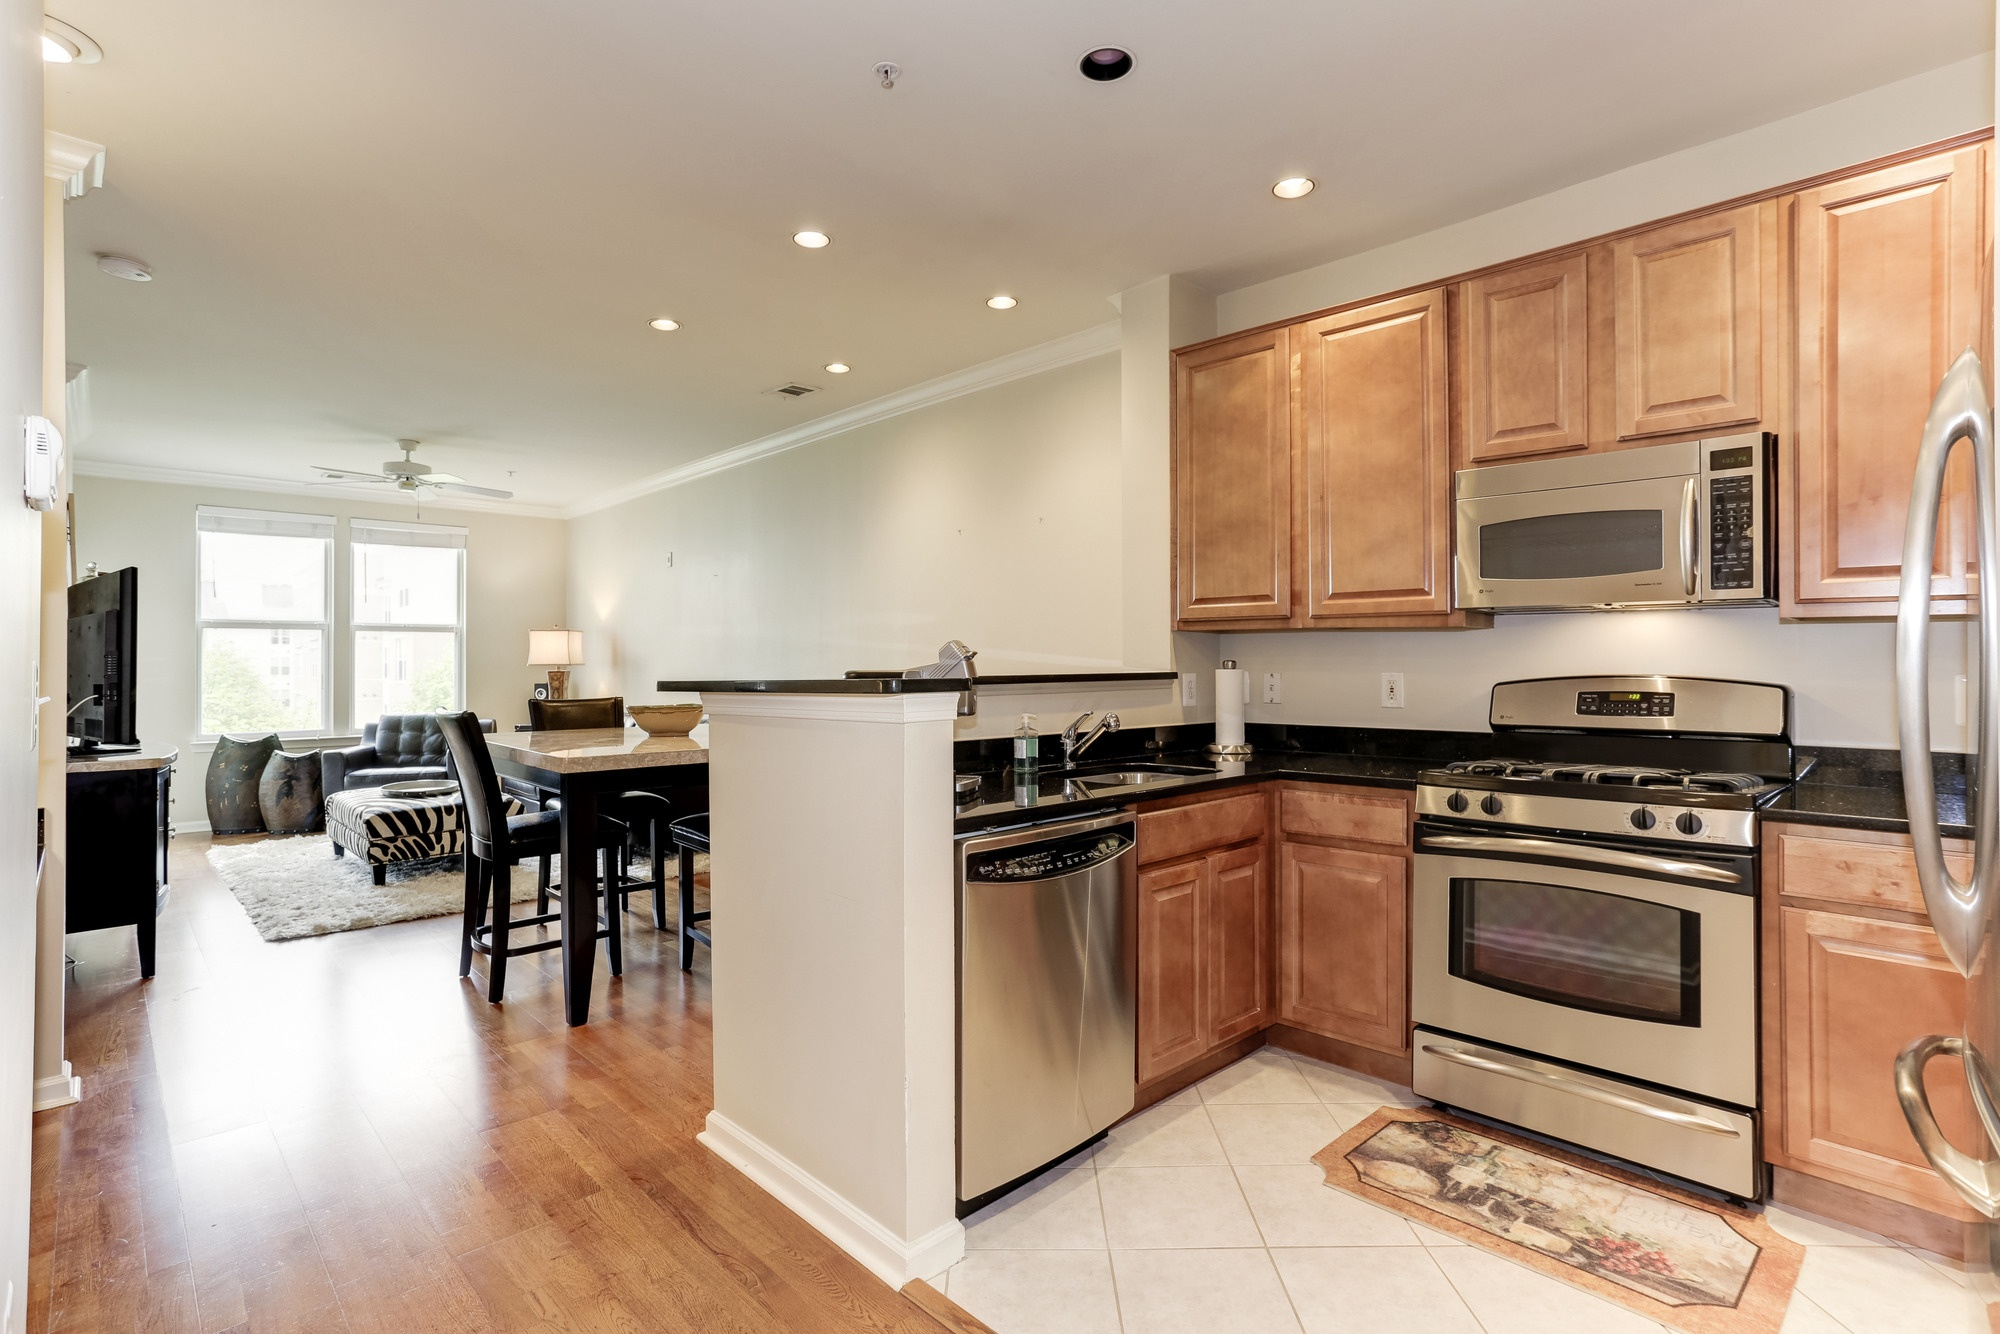 SOLD: Luxury 1 Bed Condo in Heart of Reston